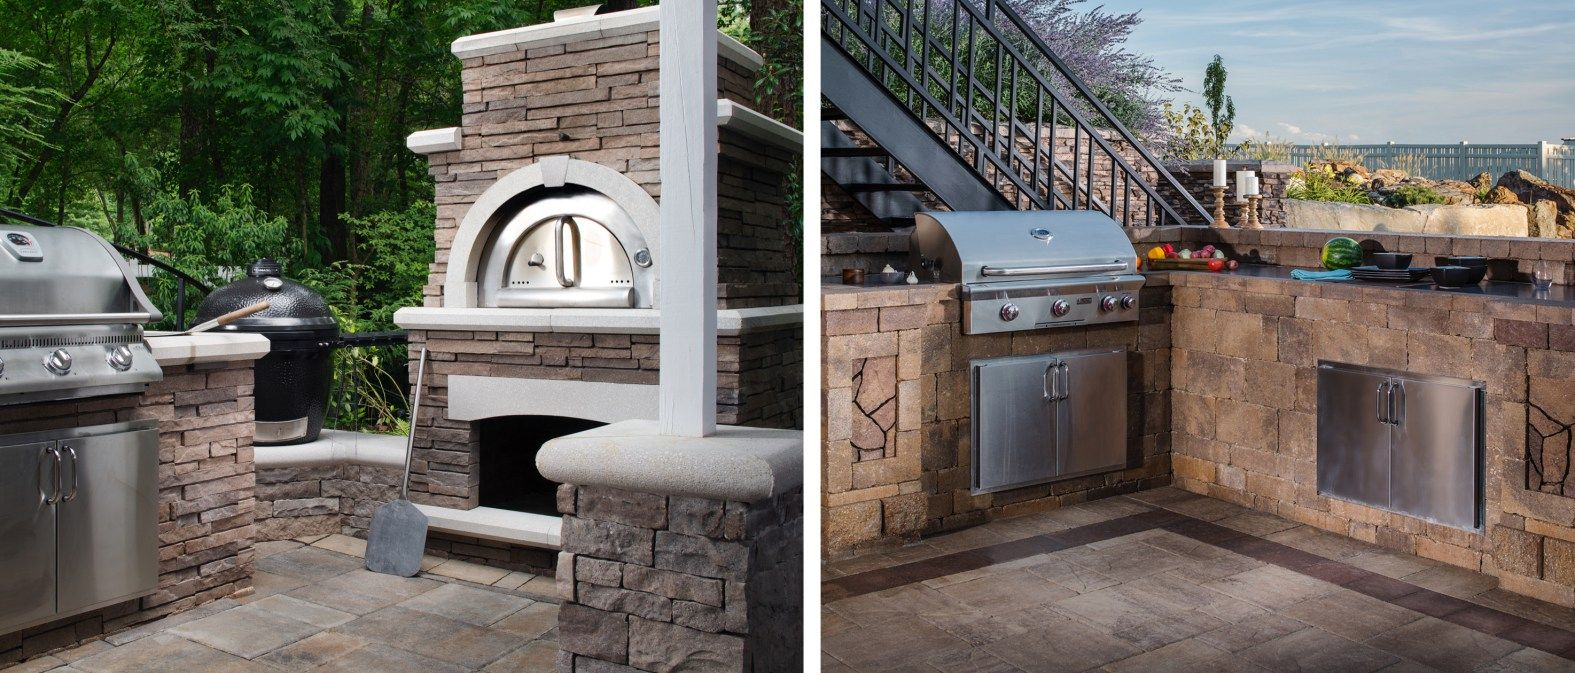 Find out whatus cooking in the latest outdoor kitchen design trends